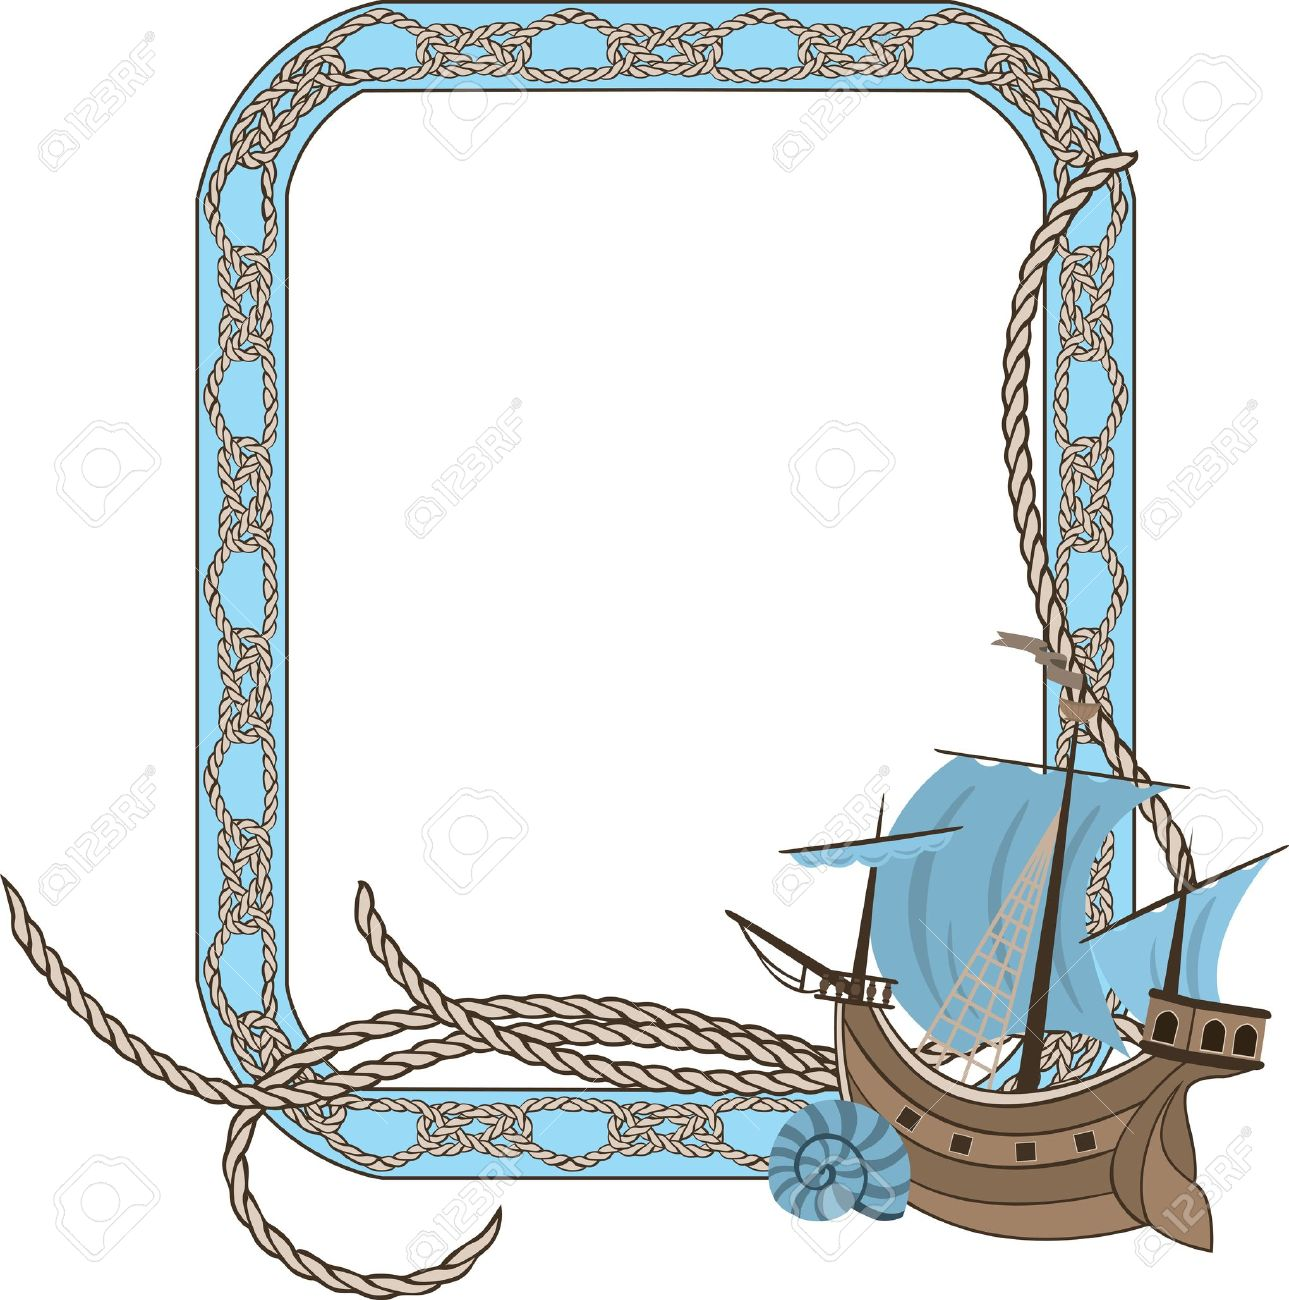 sea frame with knots and sailing vessel stock vector 11980845 - Nautical Frames